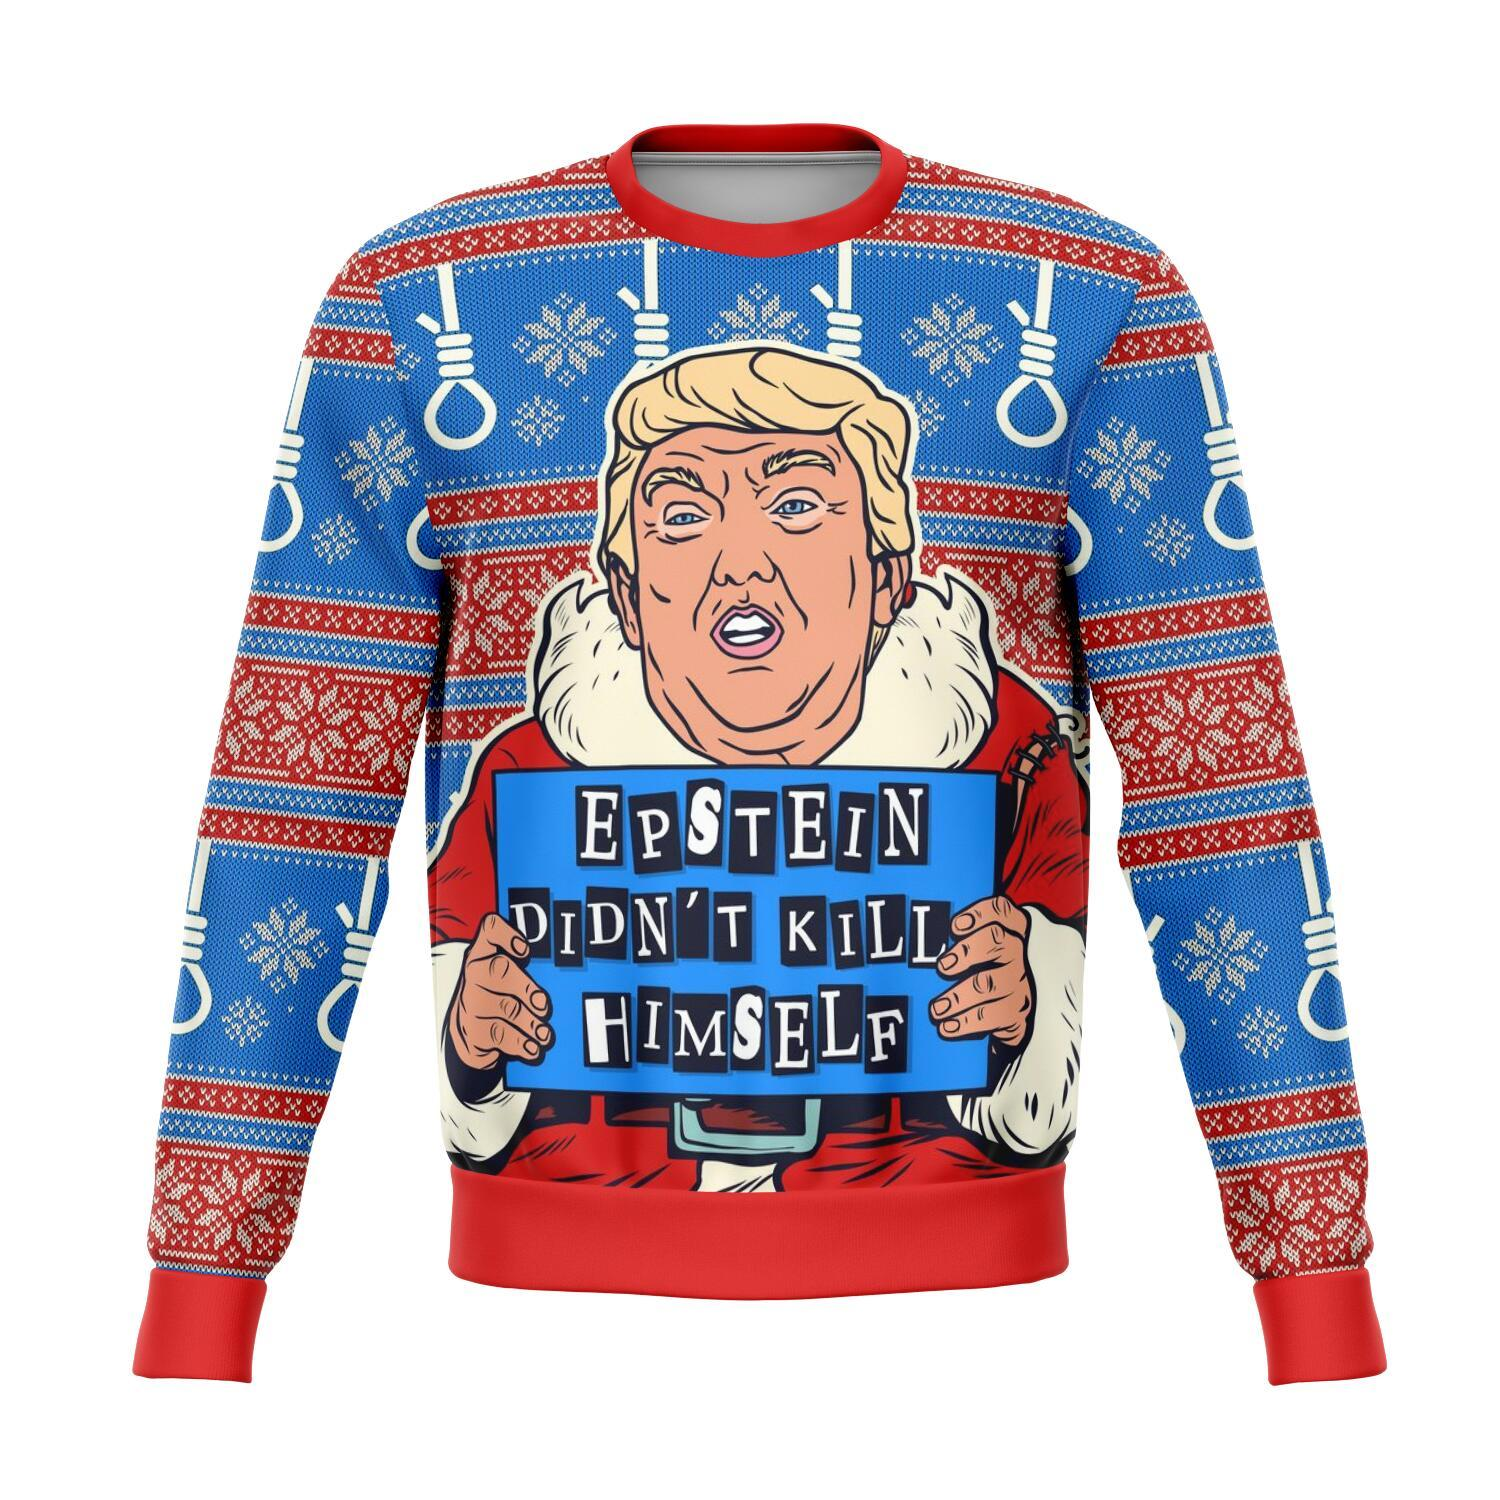 Epstein Didn't Kill Himself Donald Trump All-Over Printed Sweater 1